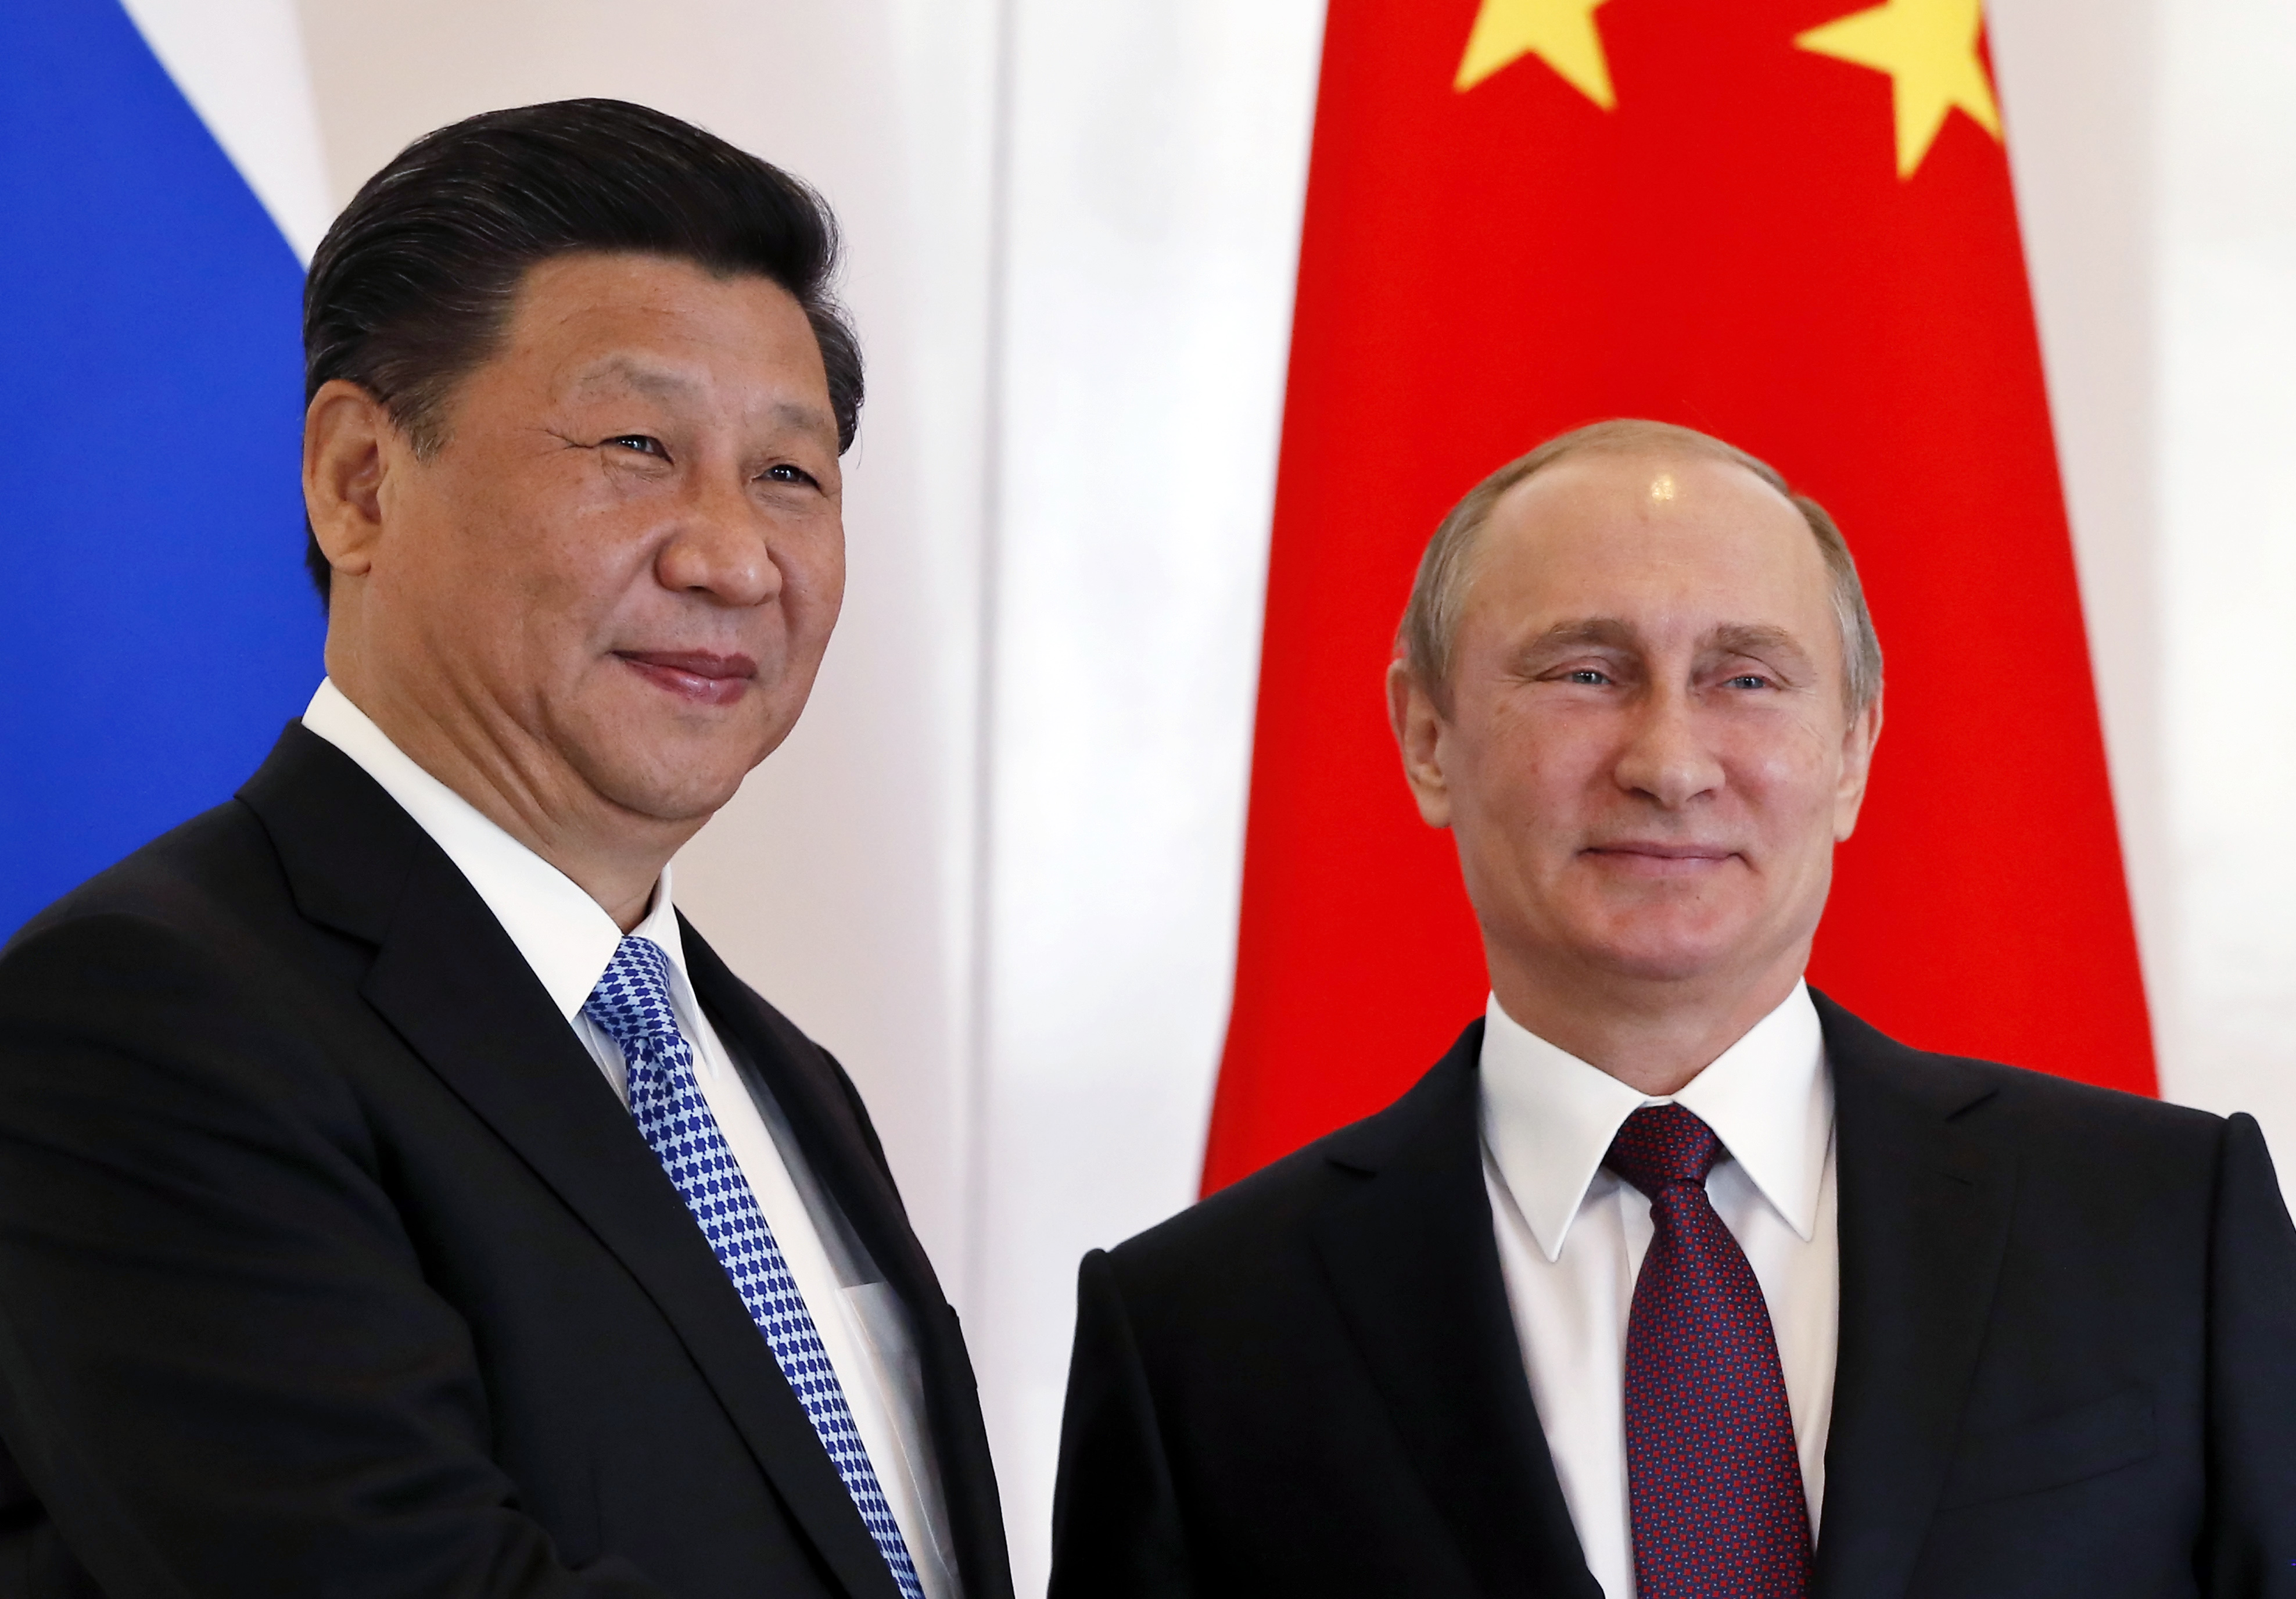 Russian President, Vladimir Putin, right, poses with Chinese President Xi Jinping during the BRICS leaders' meeting in Turkey on Nov. 15, 2015